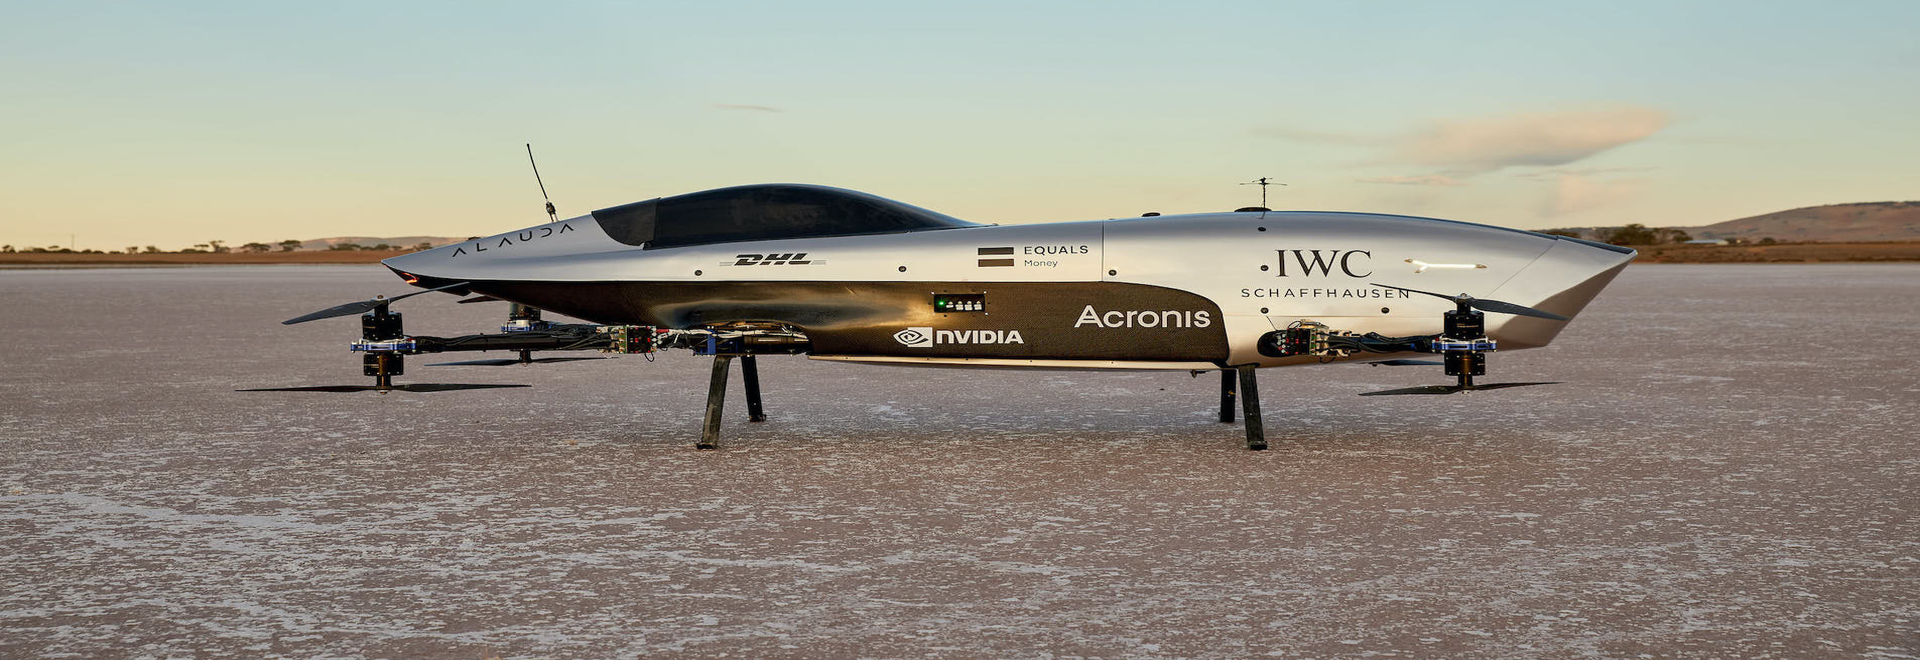 WORLD'S FIRST FLYING RACING CAR MAKES HISTORIC FLIGHT